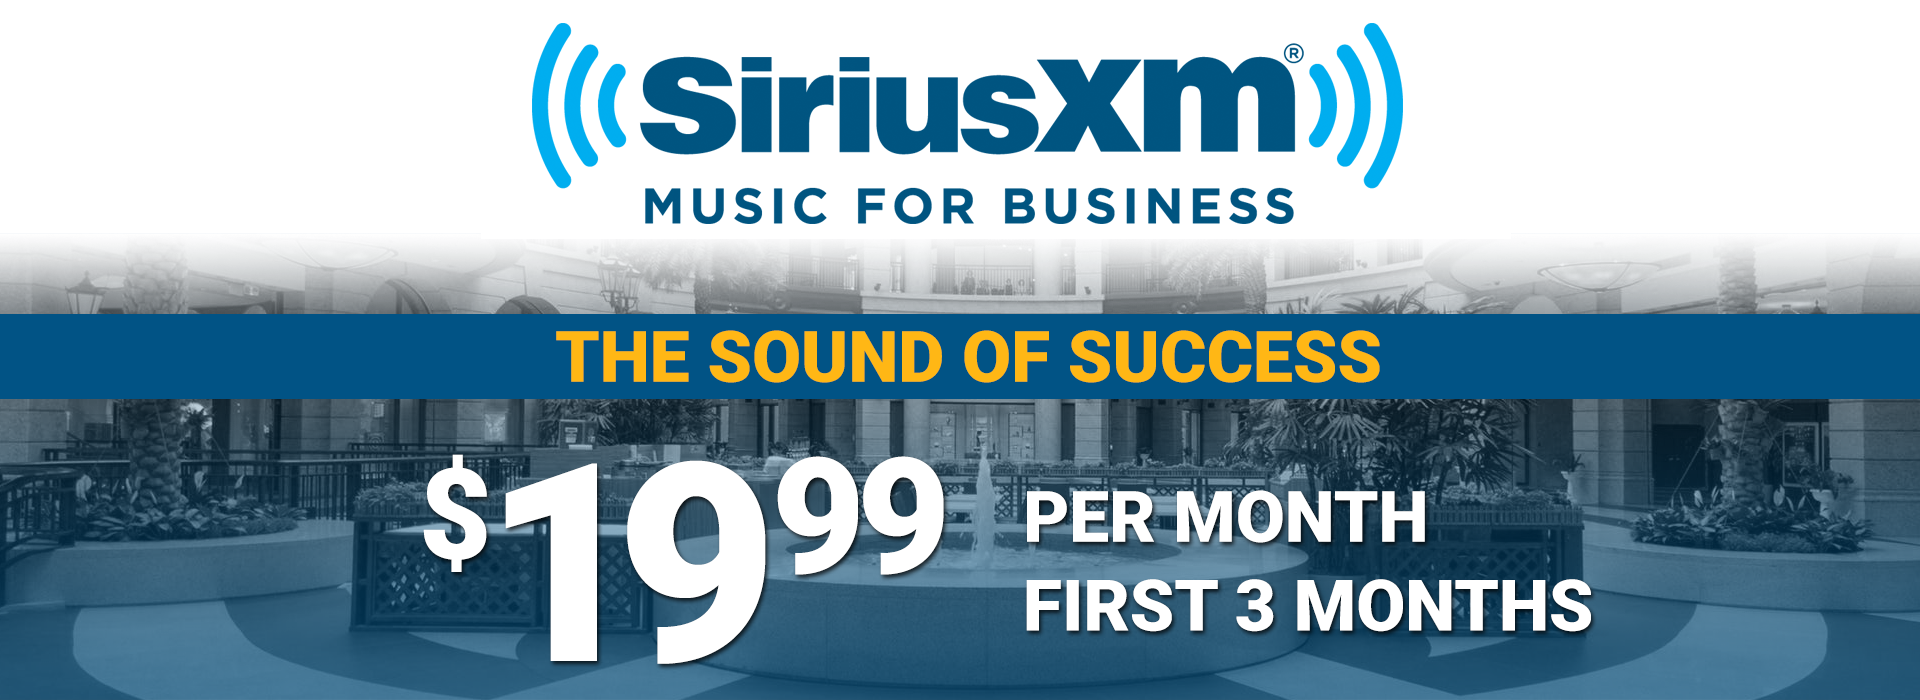 Siriusxm Cancel Subscription >> Siriusxm Music For Business Sonu Media 877 307 6677